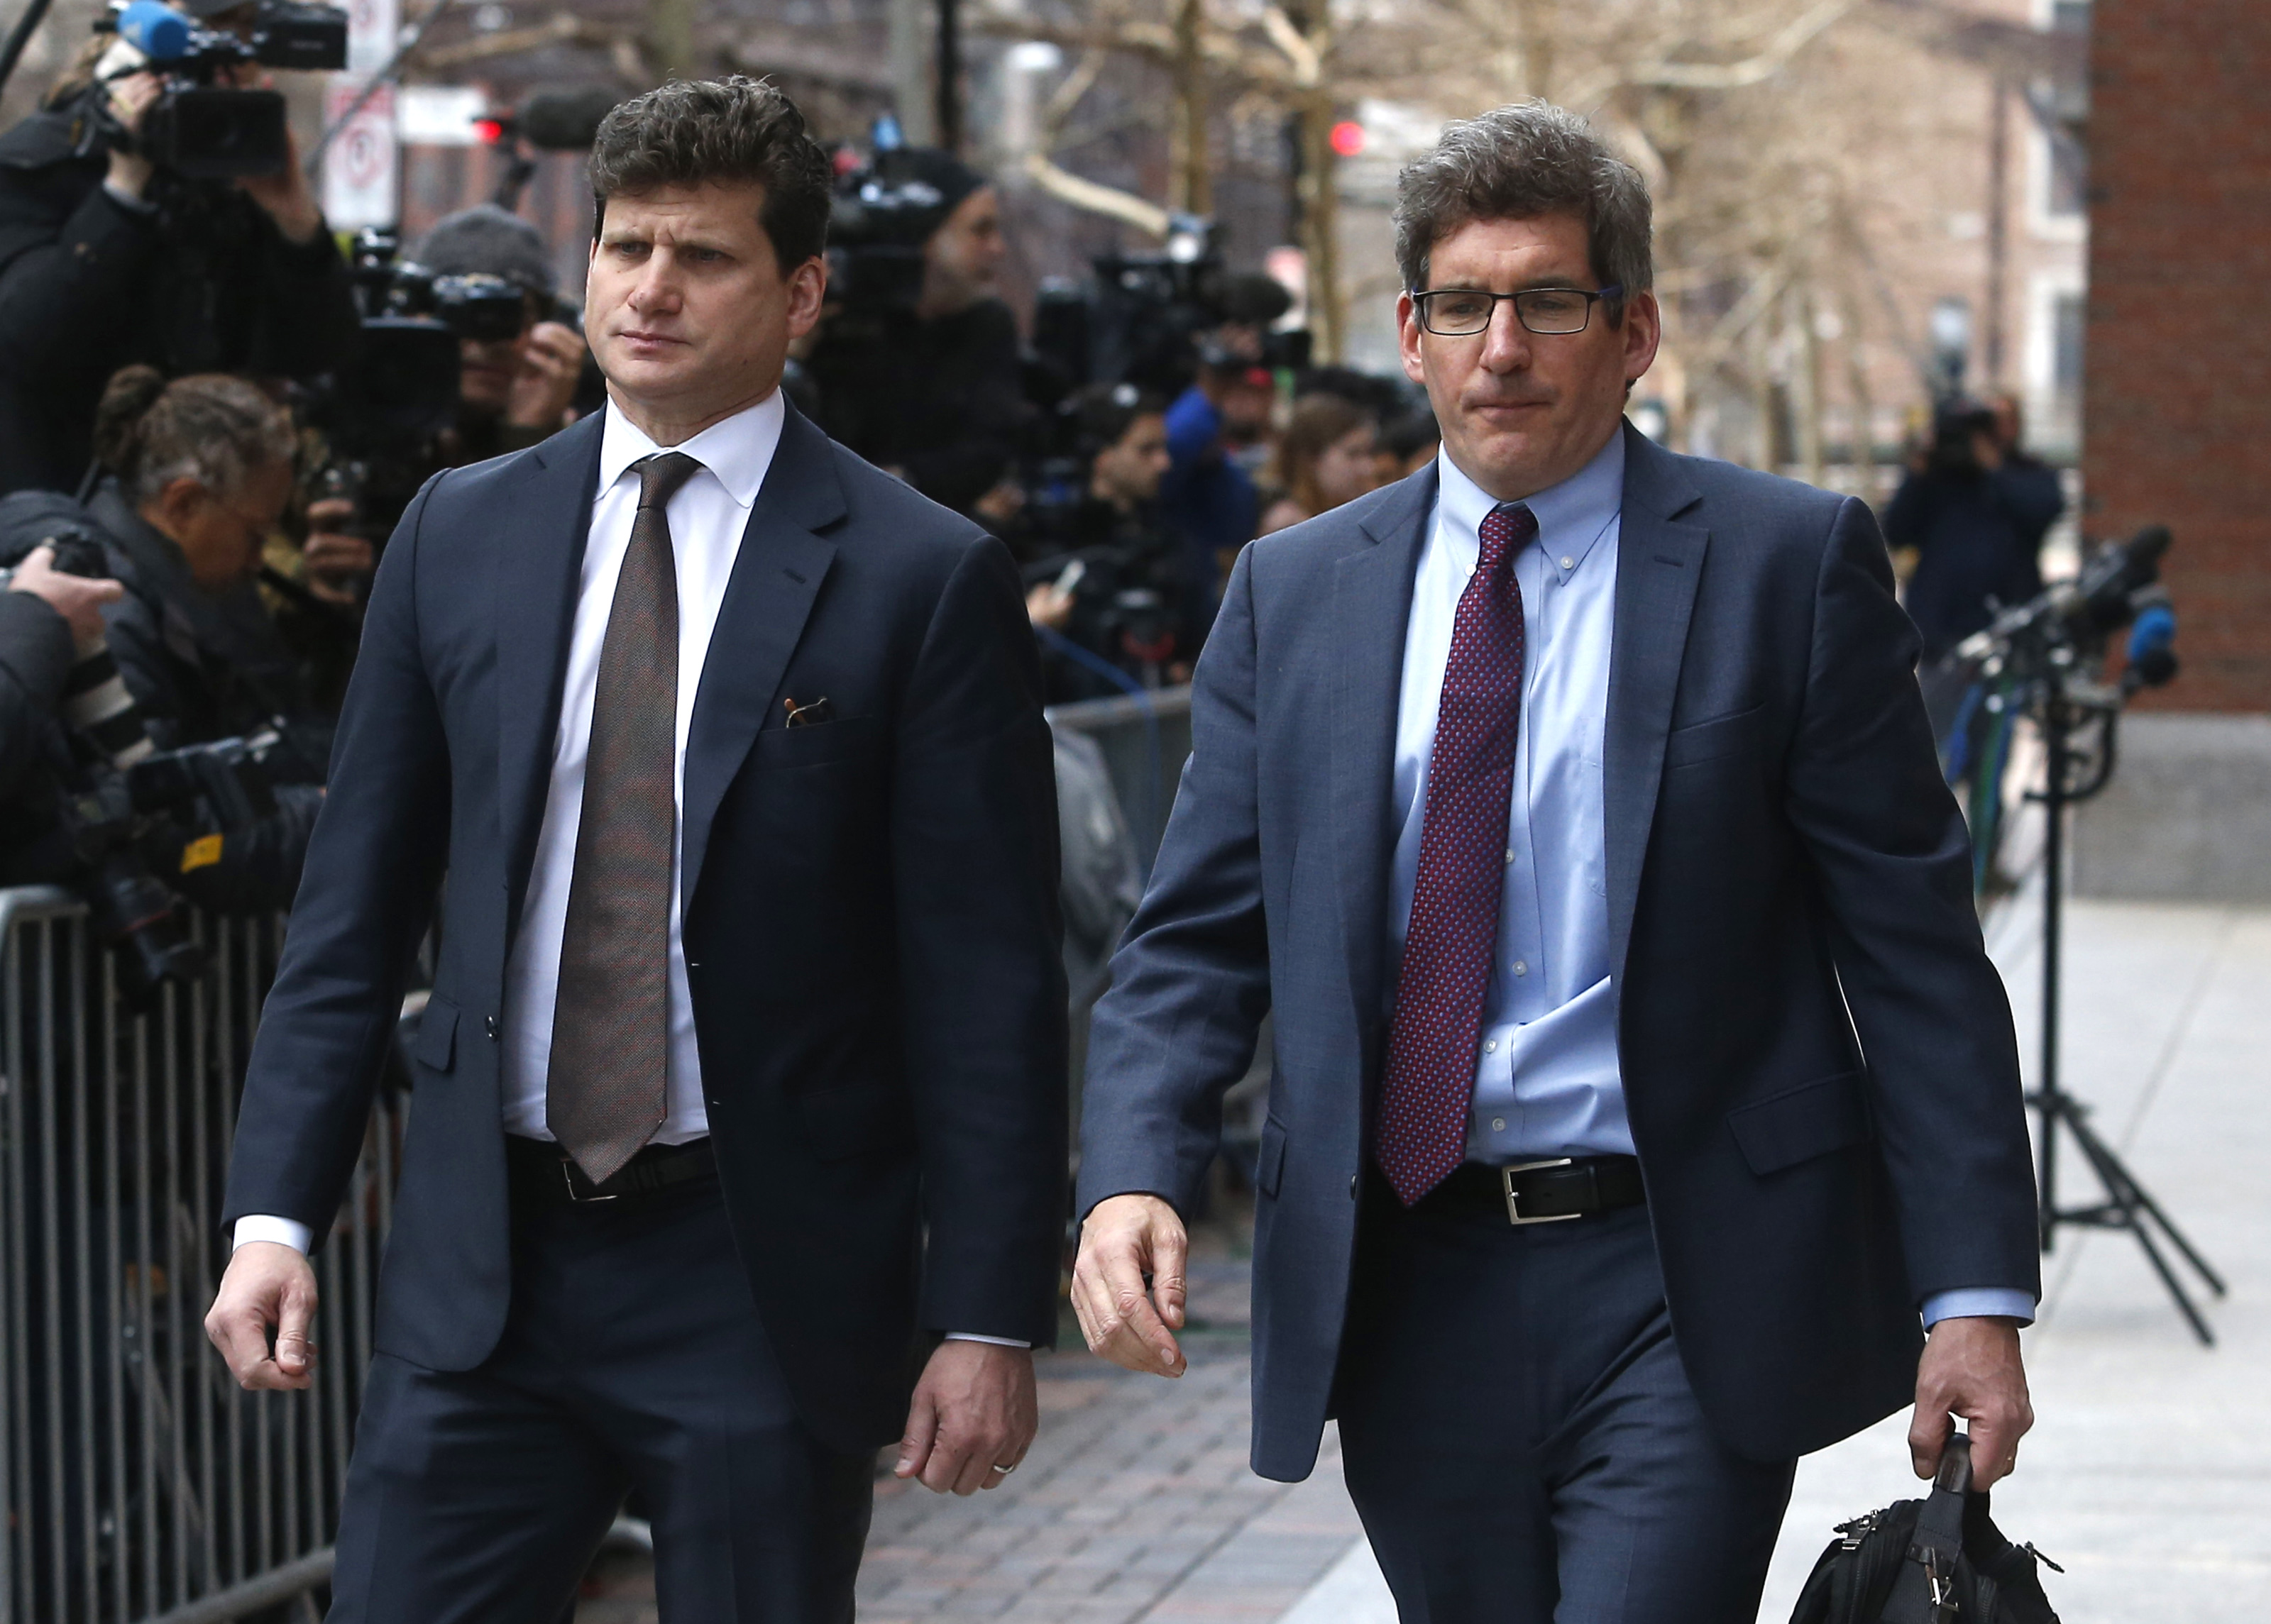 Disgraced Former Biglaw Chair Gets Jail Time For His Role In College Admissions Scandal